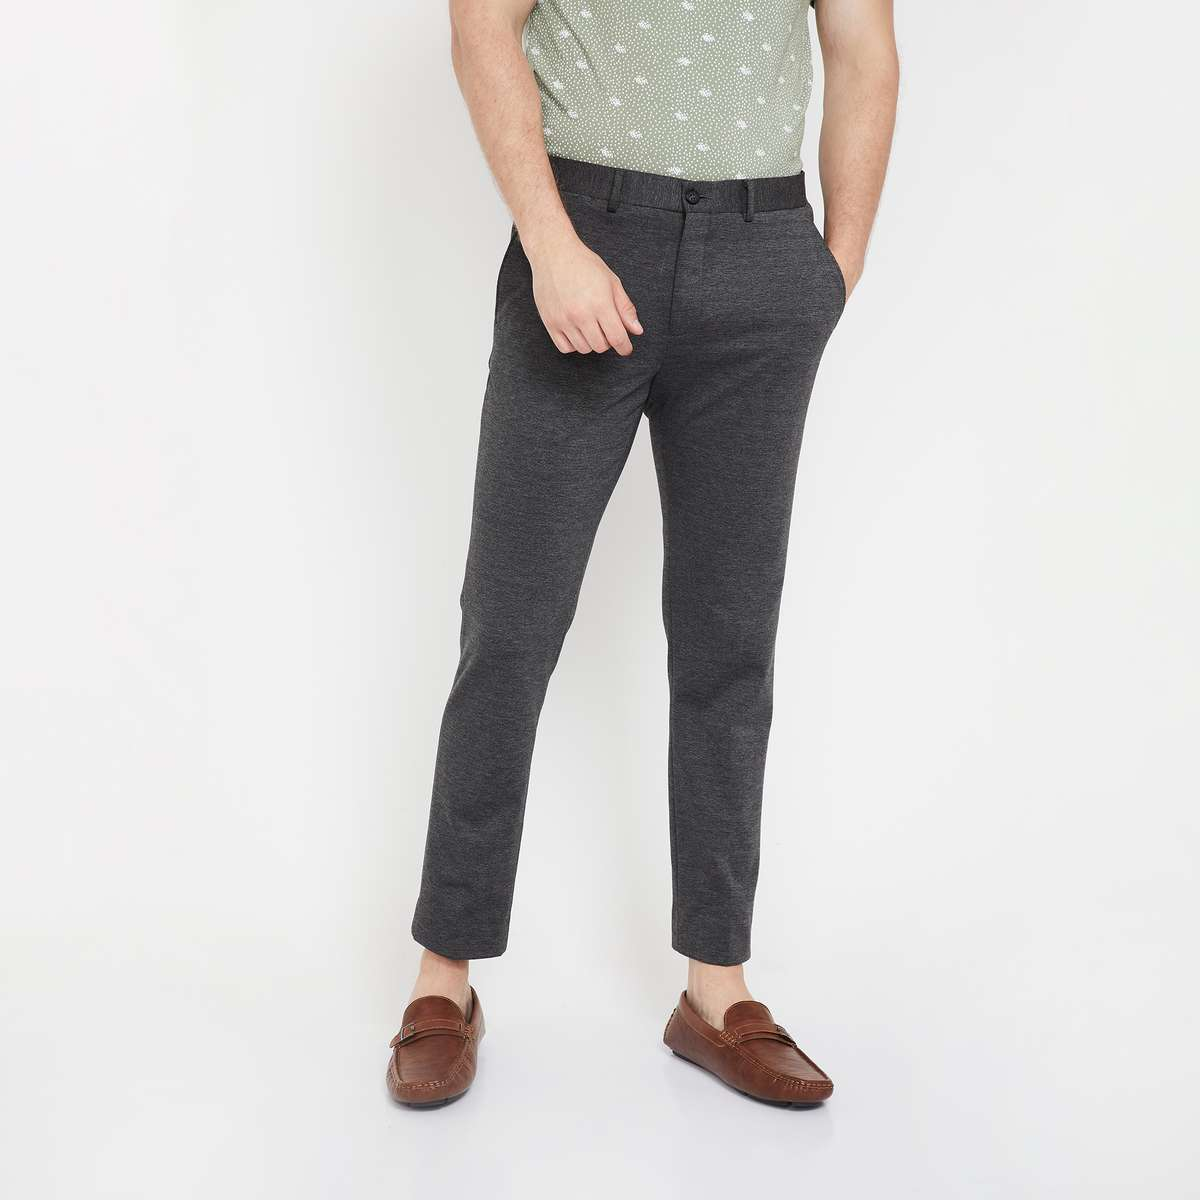 4.CODE Patterned Flat-Front Cropped Trousers